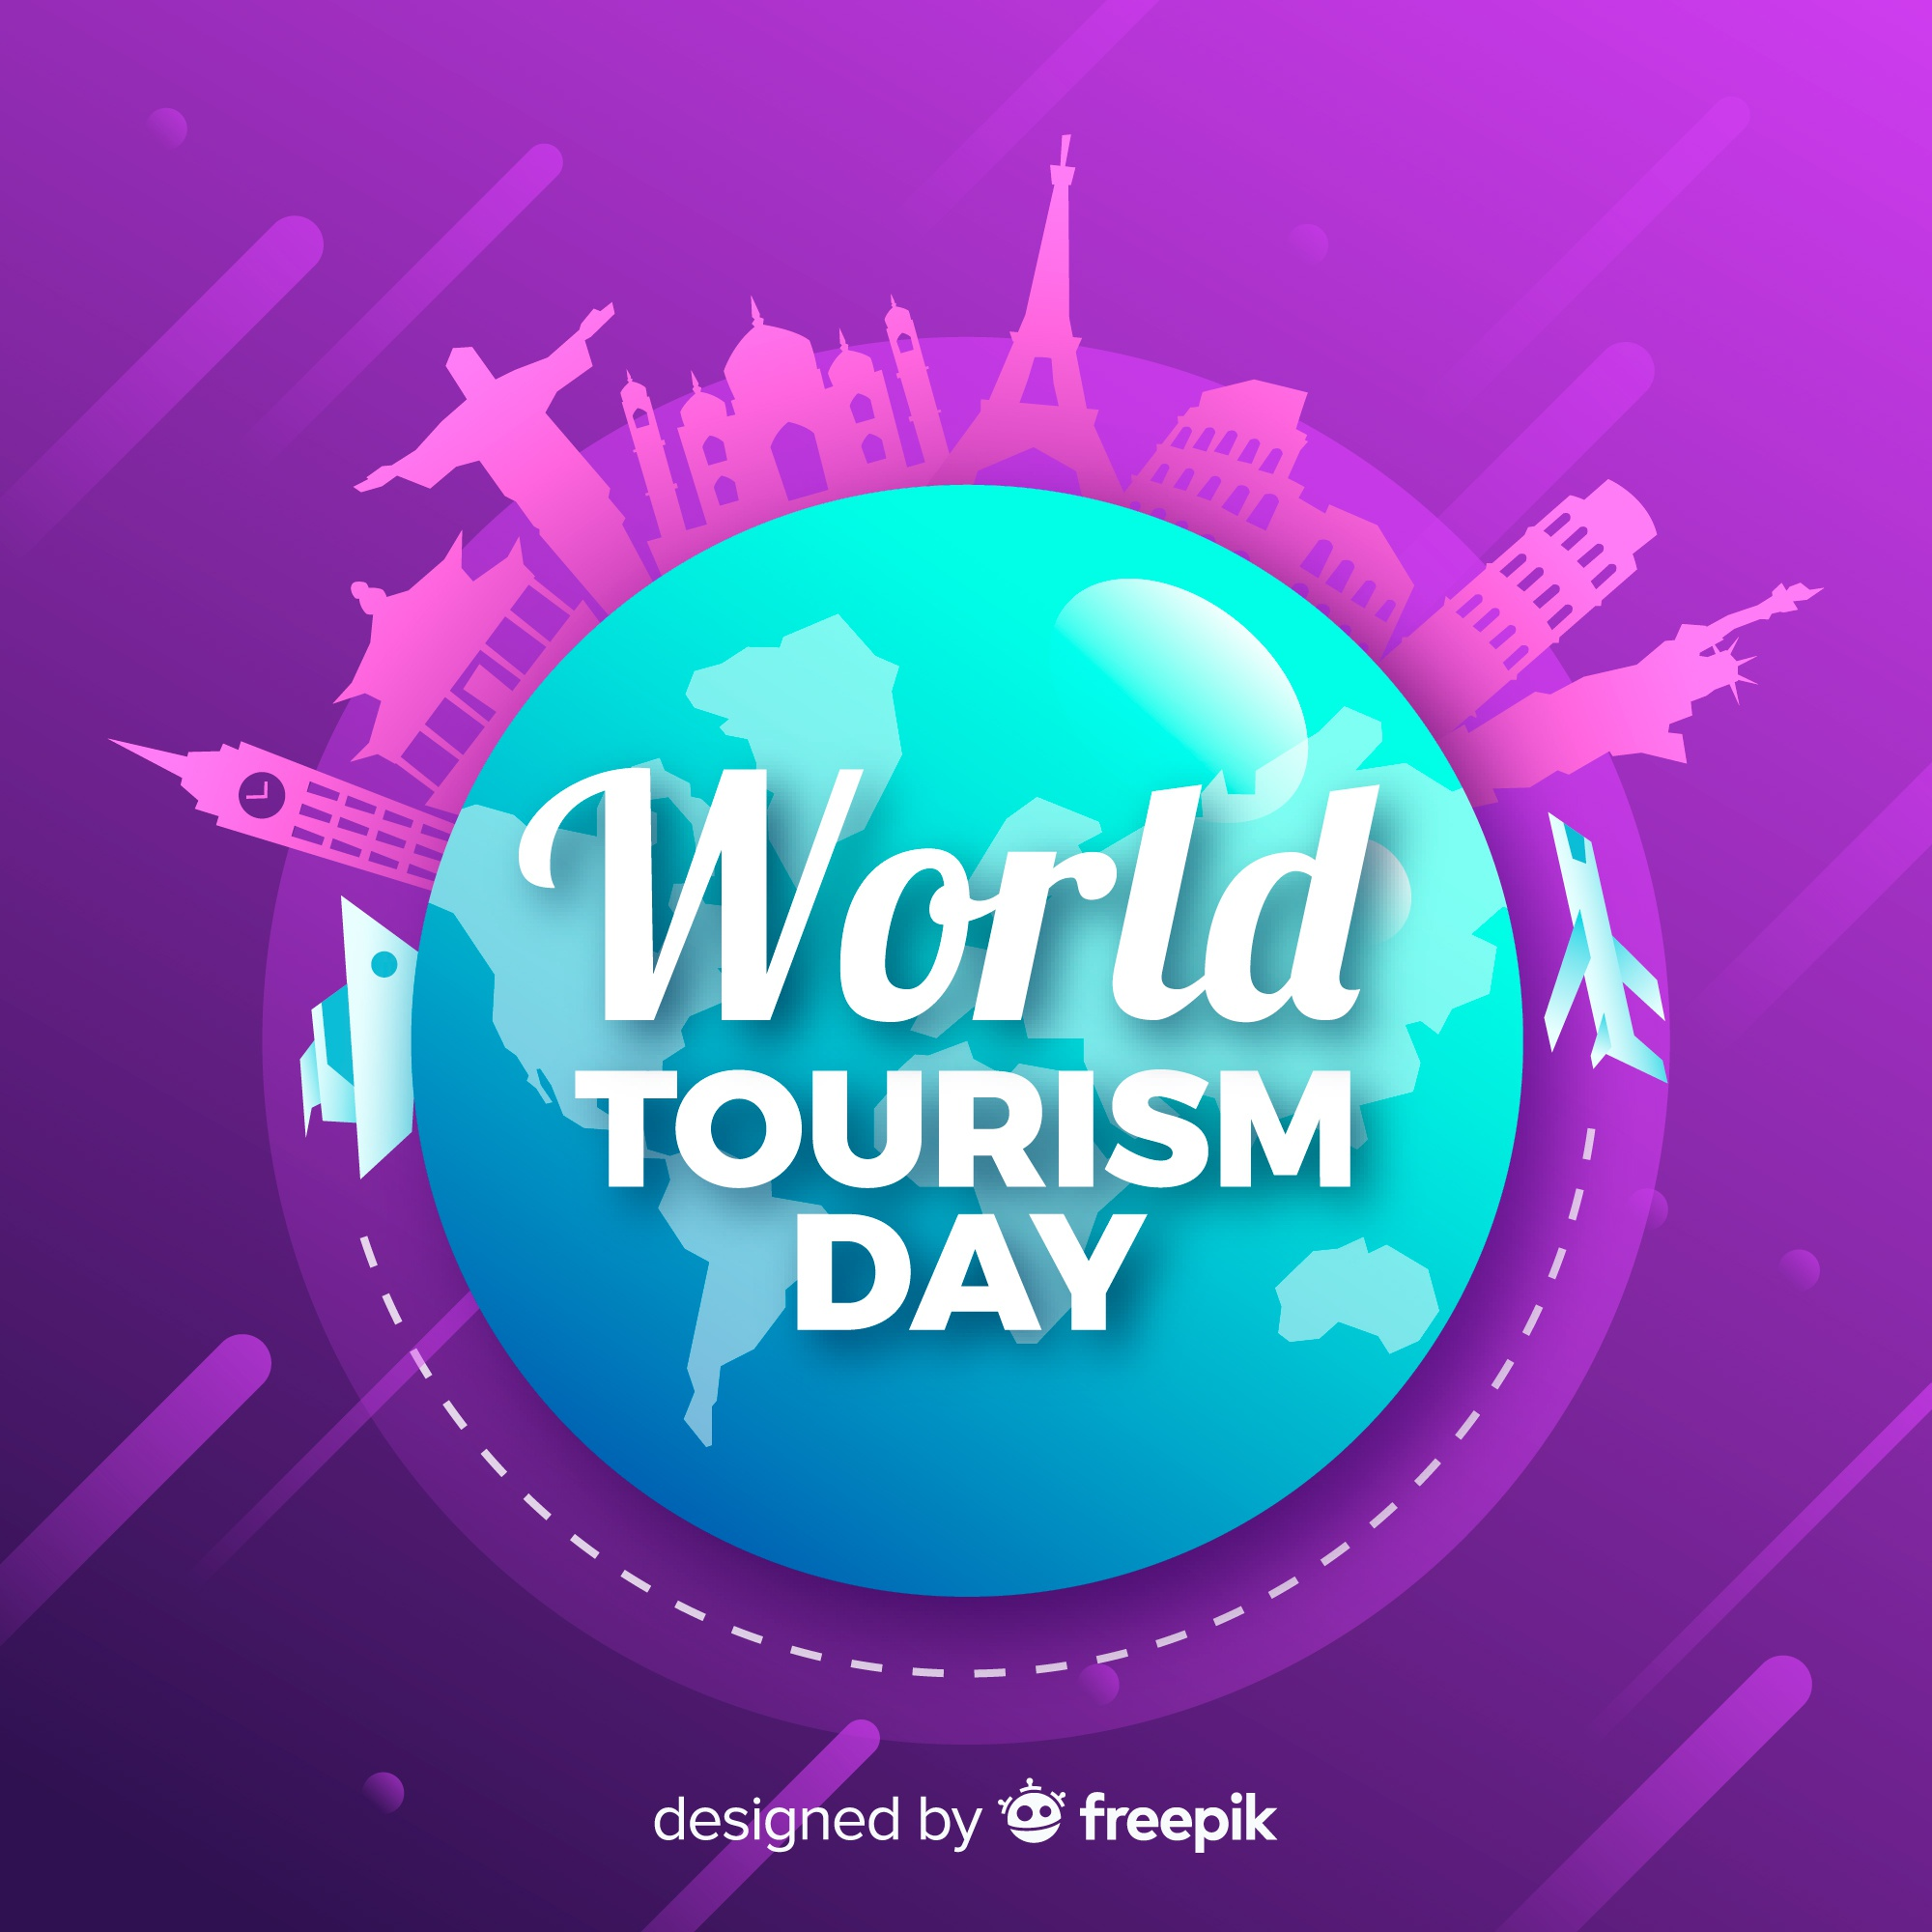 Tourism day background with monuments around earth